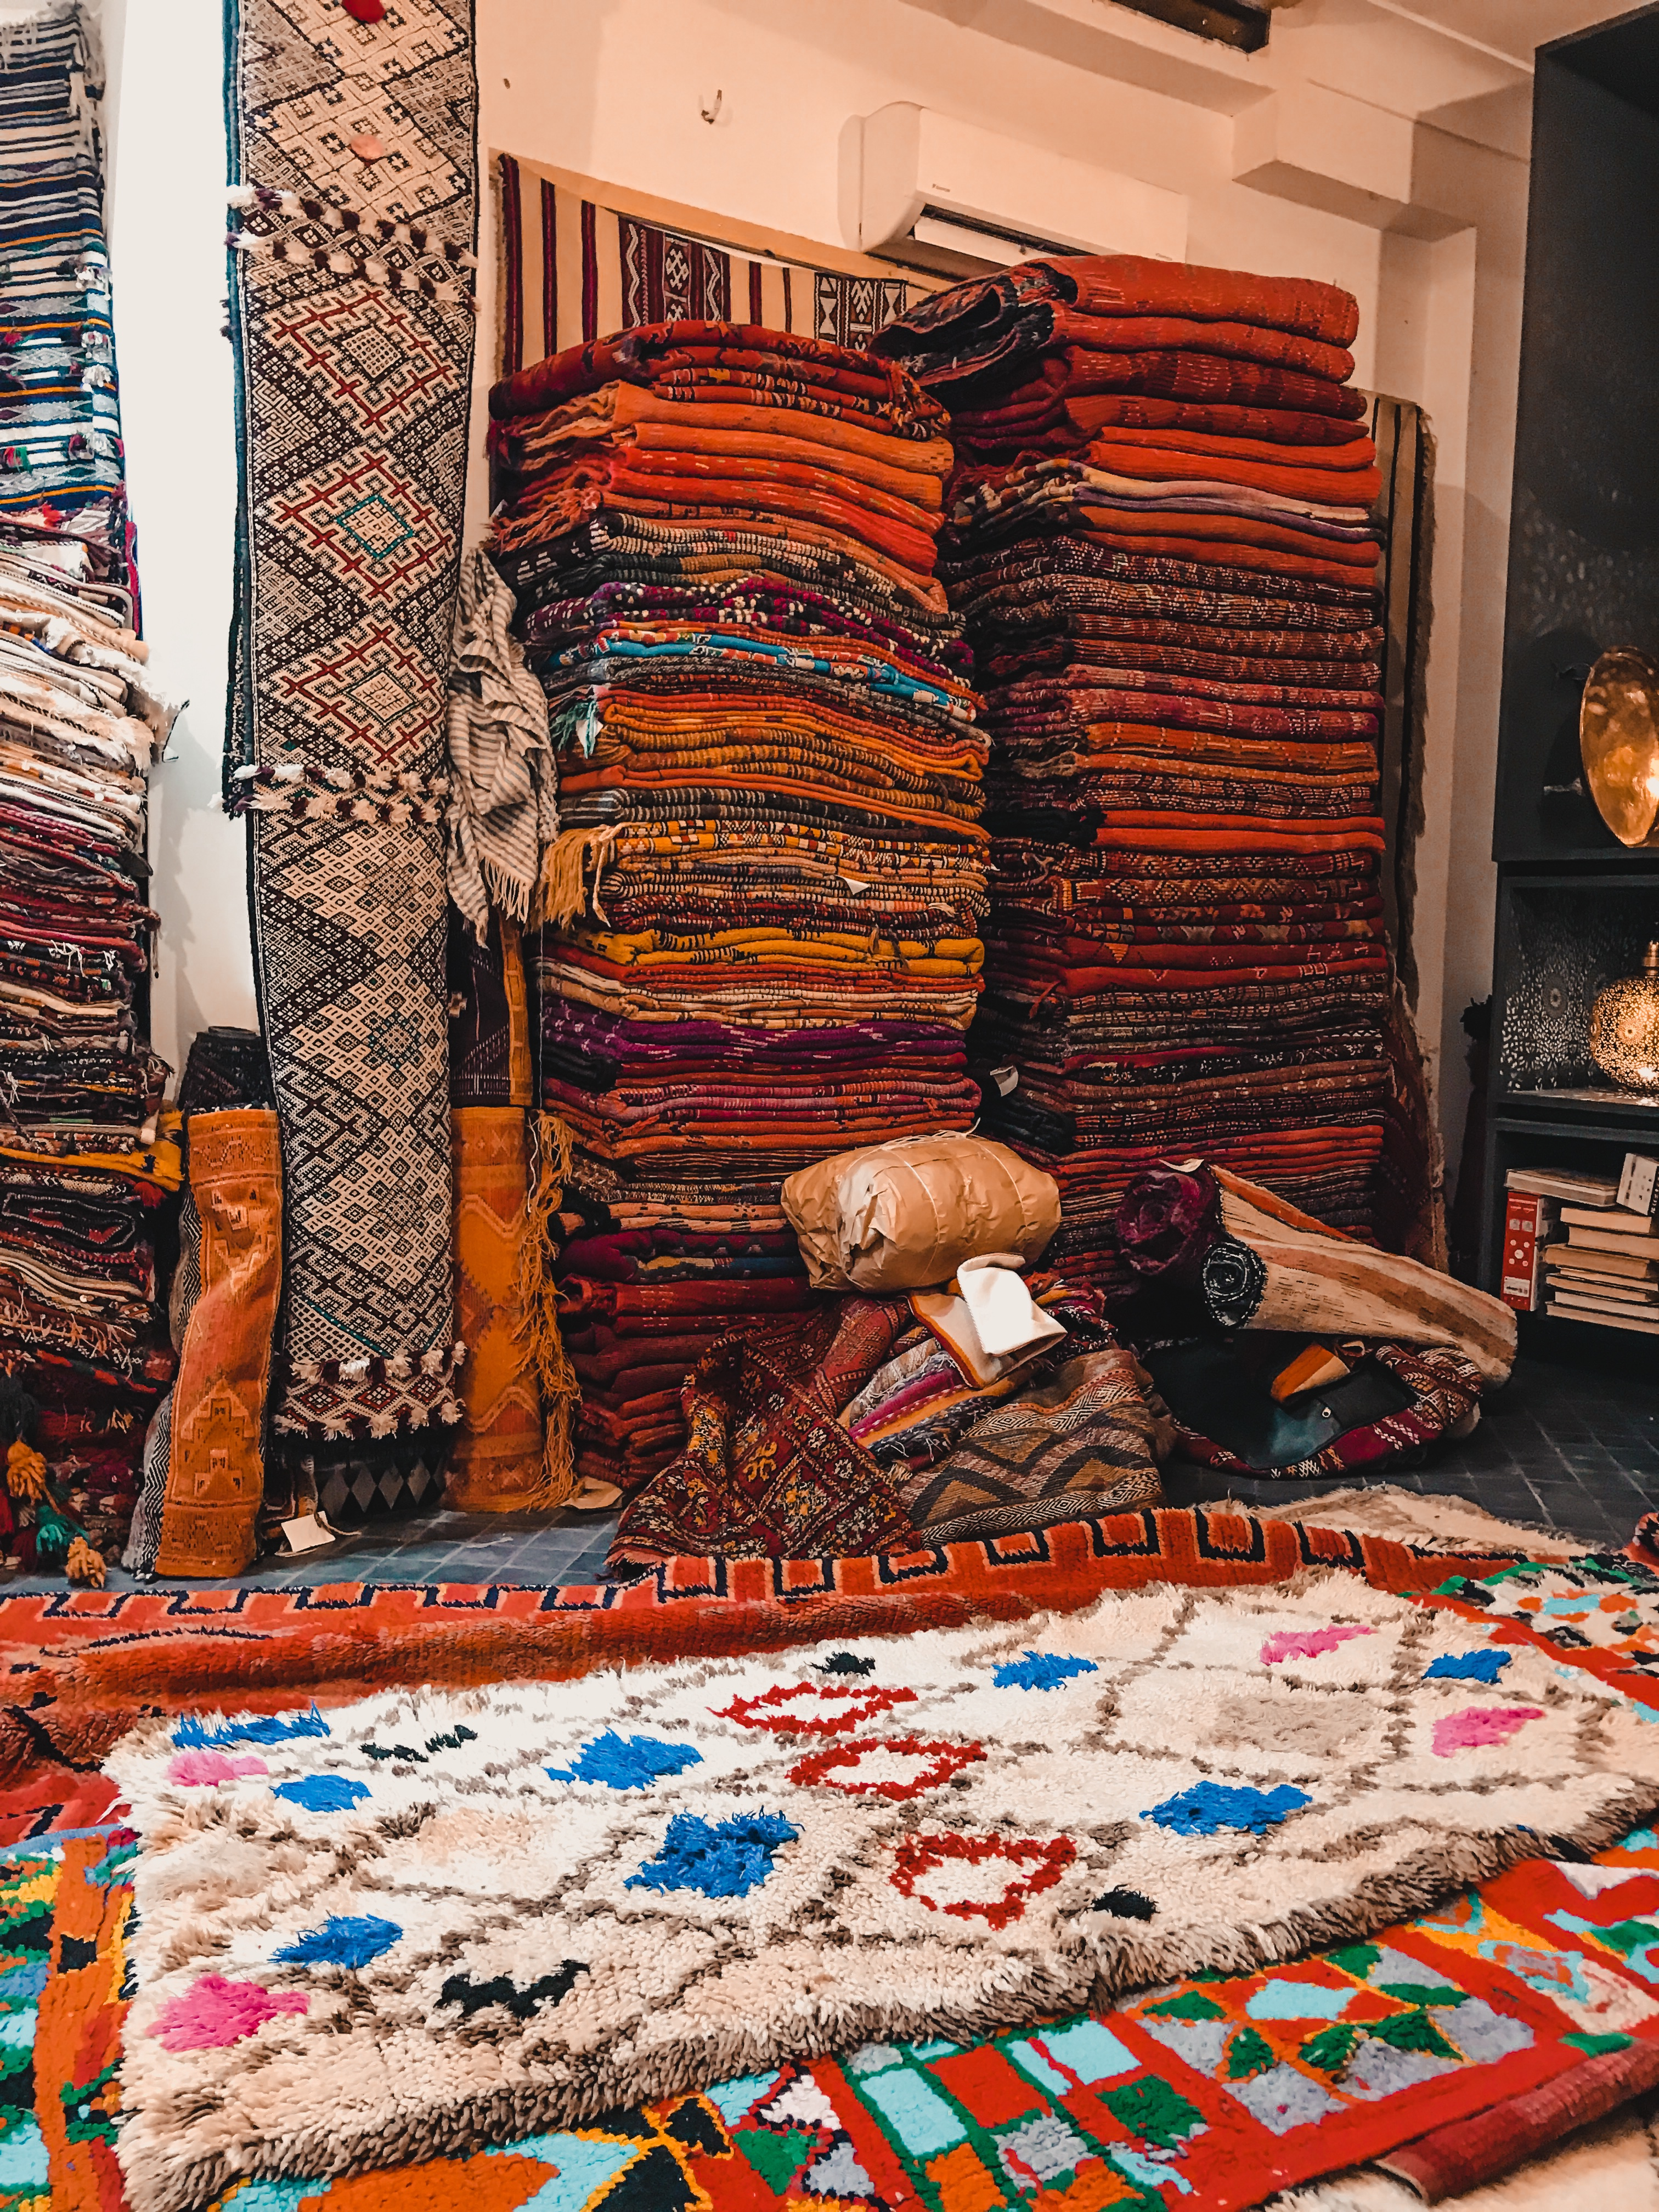 piles of Morocco rugs